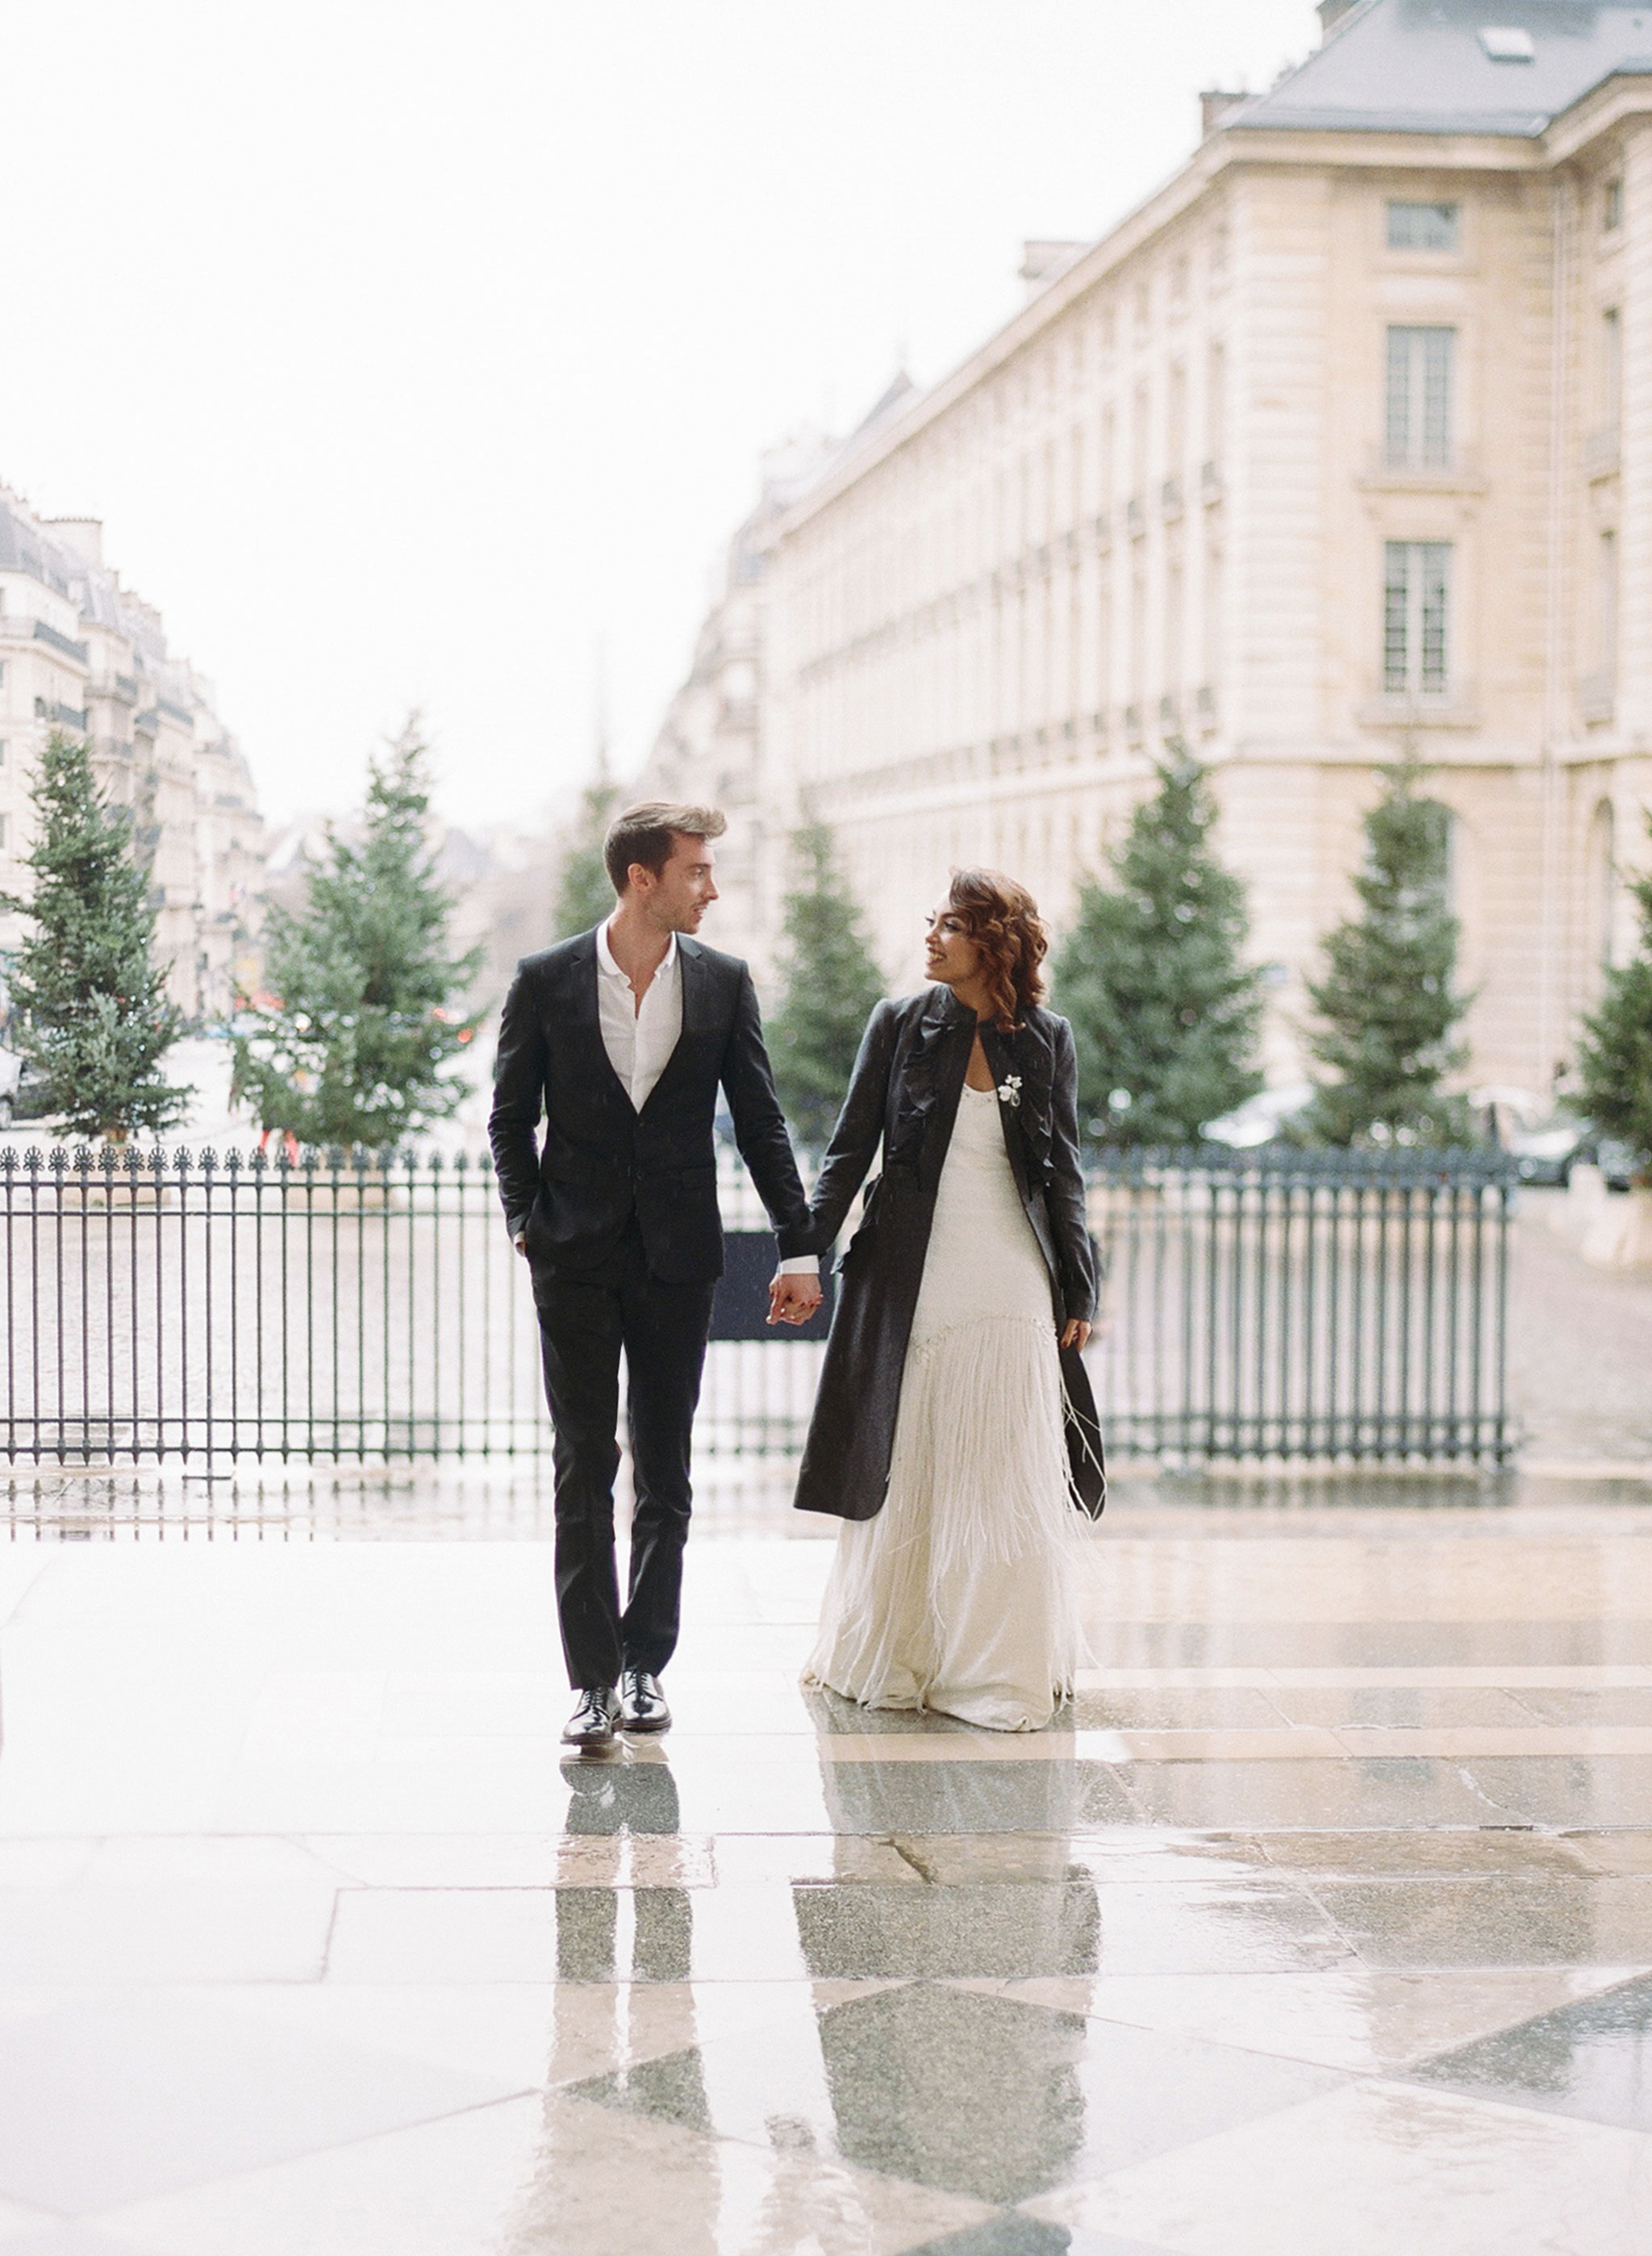 wedding-photographer-paris-40.jpg